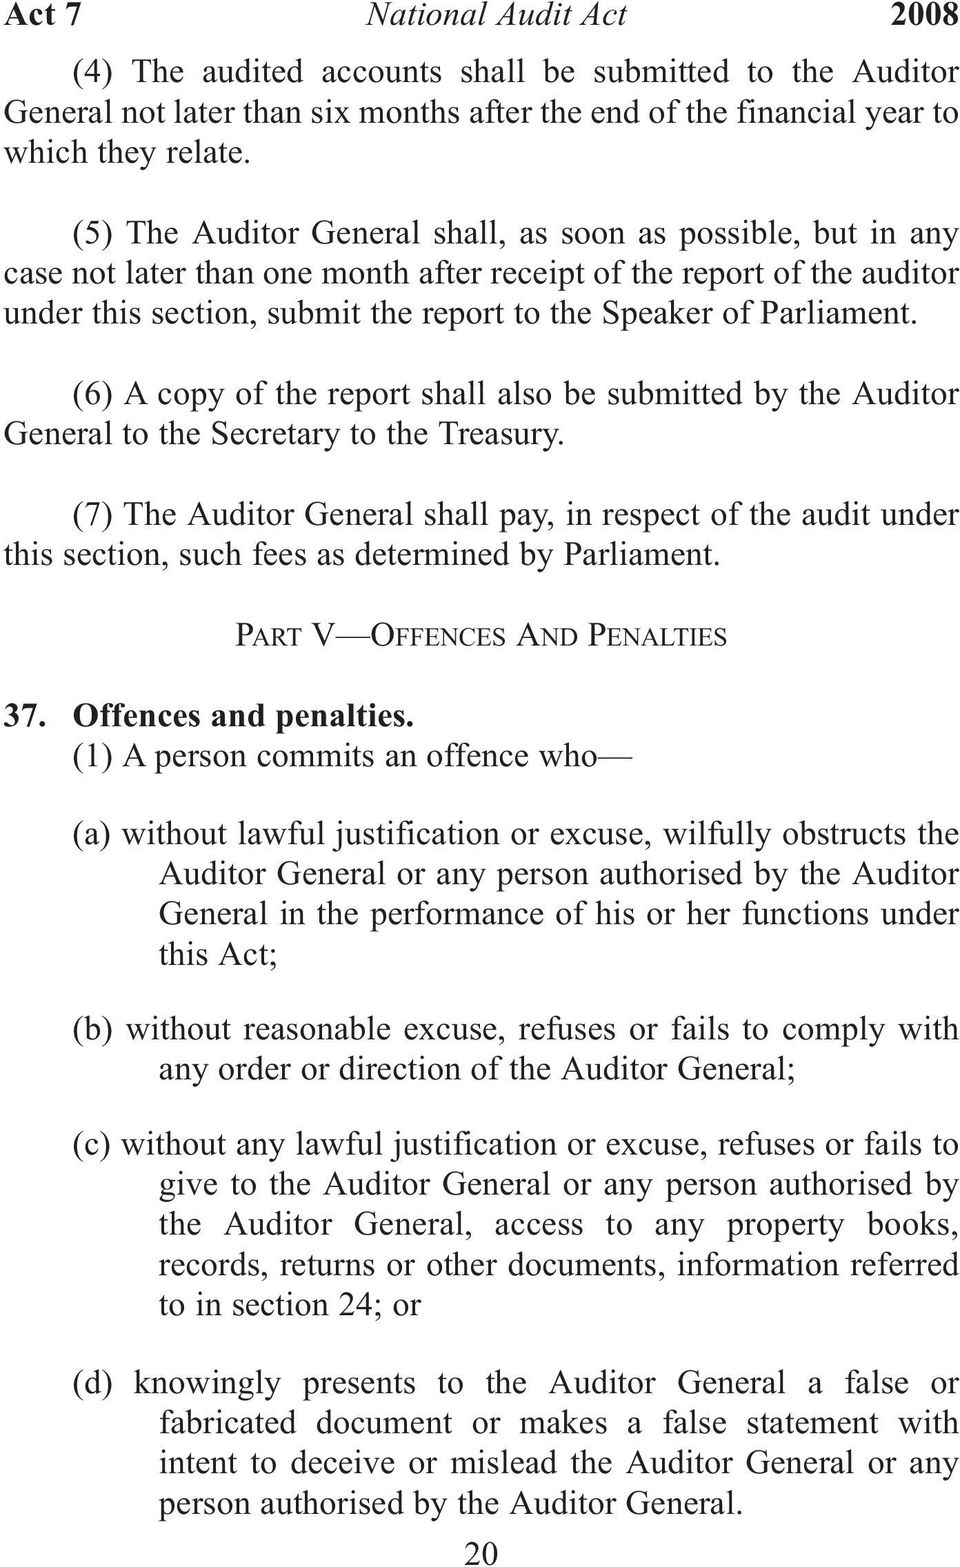 Parliament. (6) A copy of the report shall also be submitted by the Auditor General to the Secretary to the Treasury.